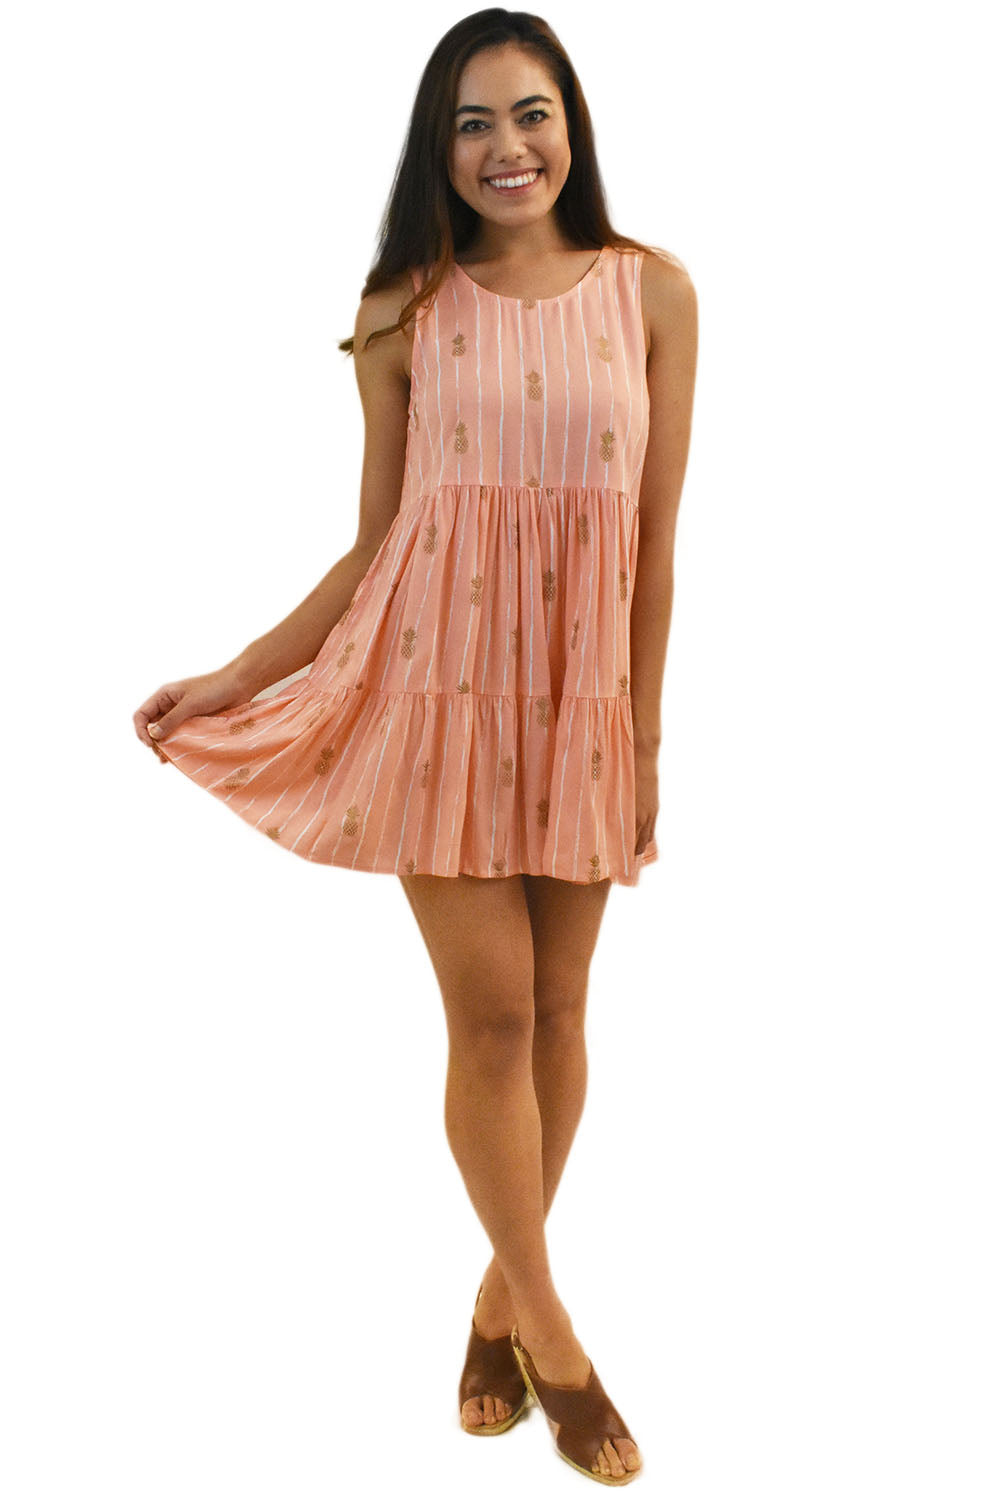 Ala Short Dress in Pineapple Coral